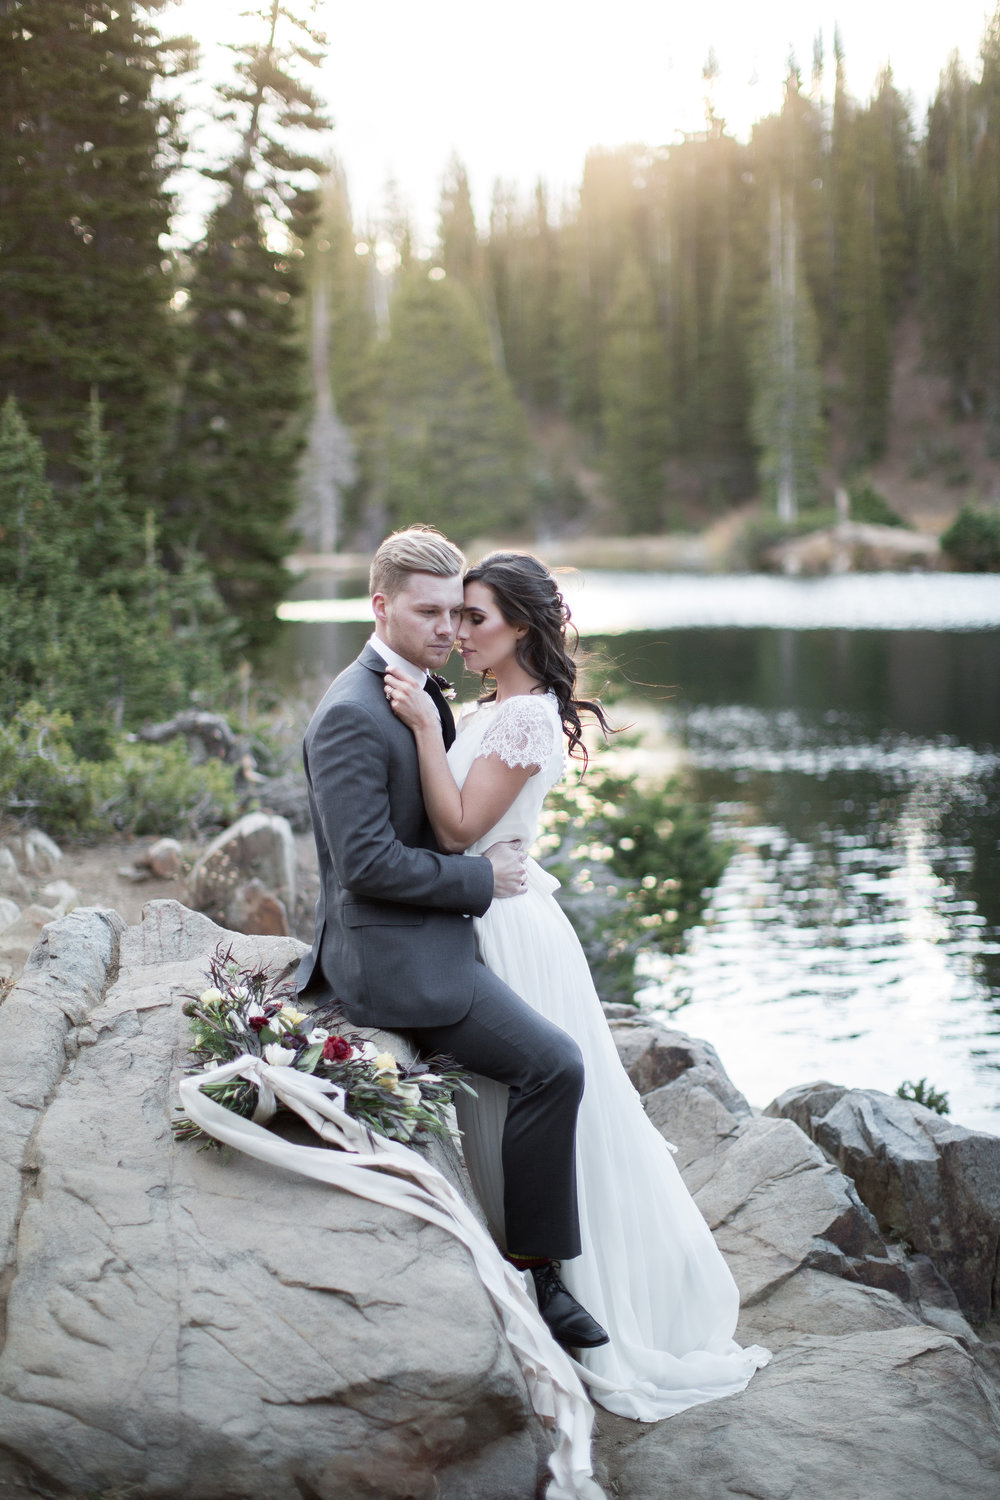 UtahValleyBrideShootTR2016 (64 of 110).jpg